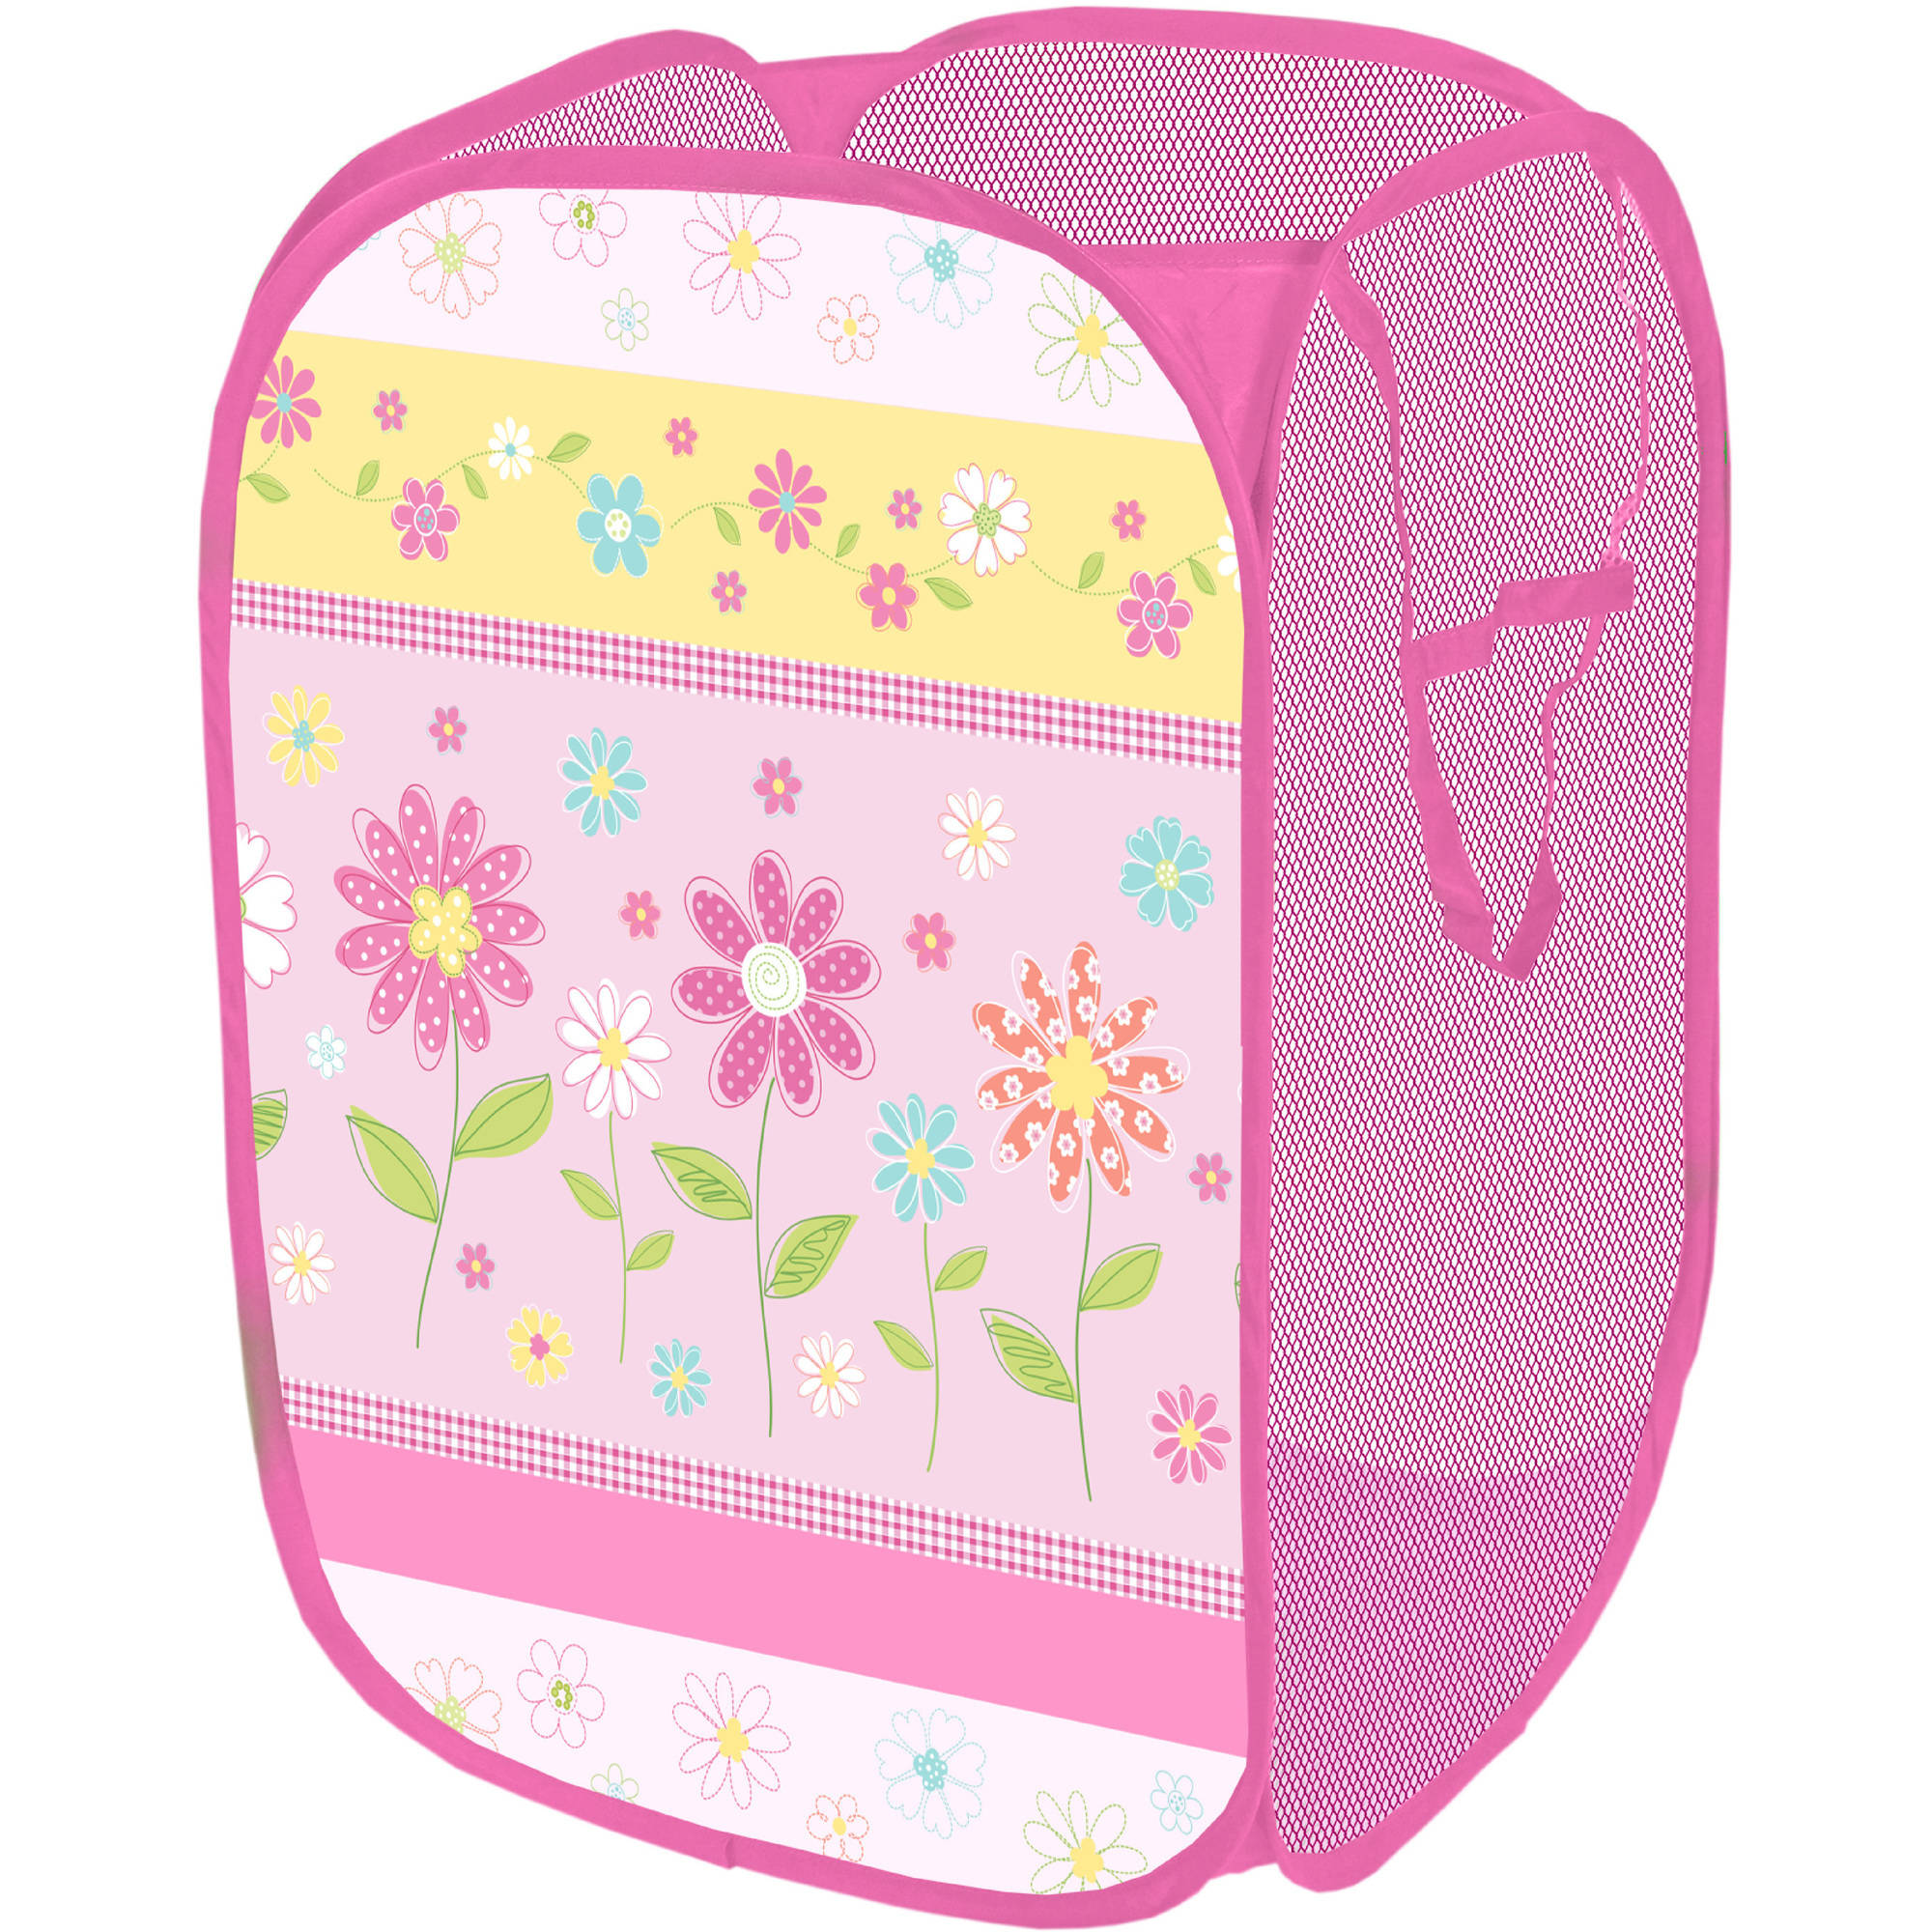 Kids Scene Daisy Garden Pop Up Hamper